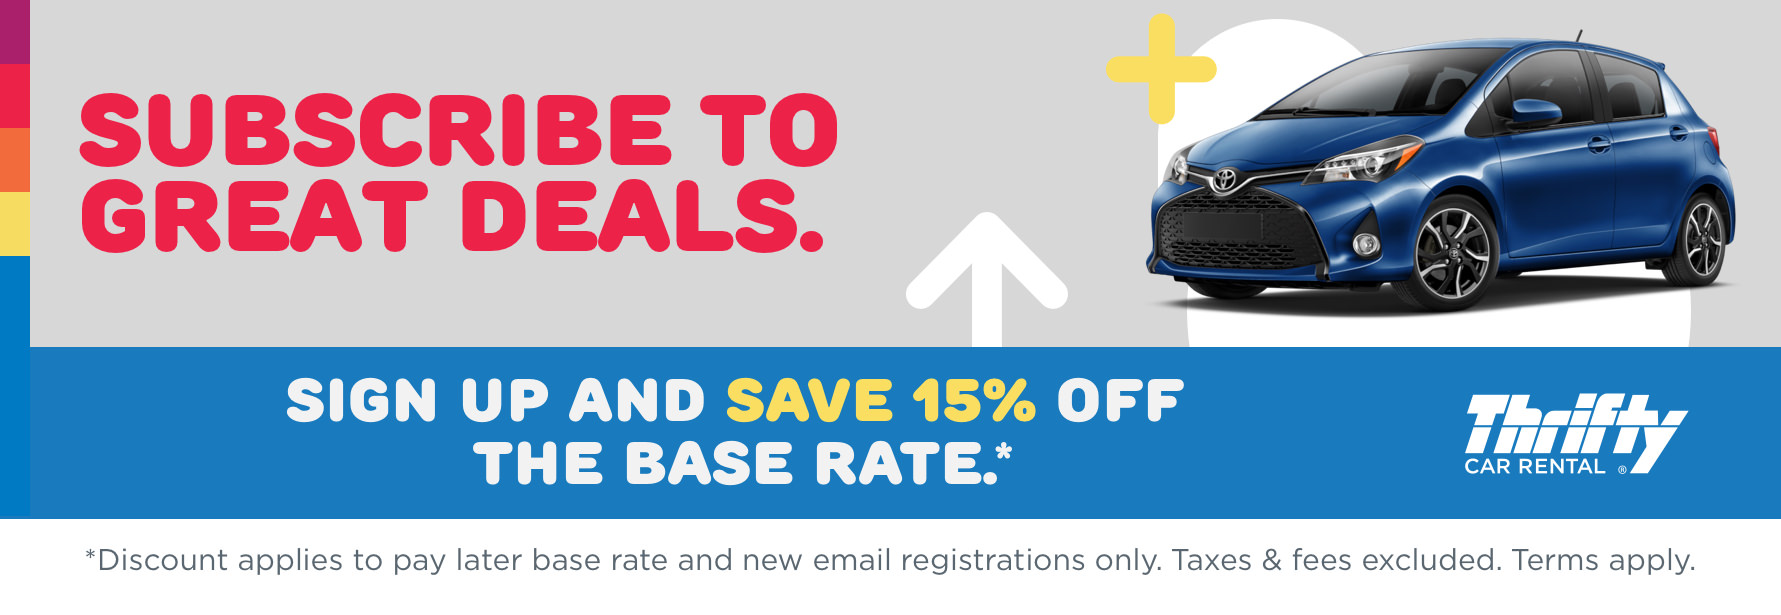 Thrifty Save 15% Off Base Rate